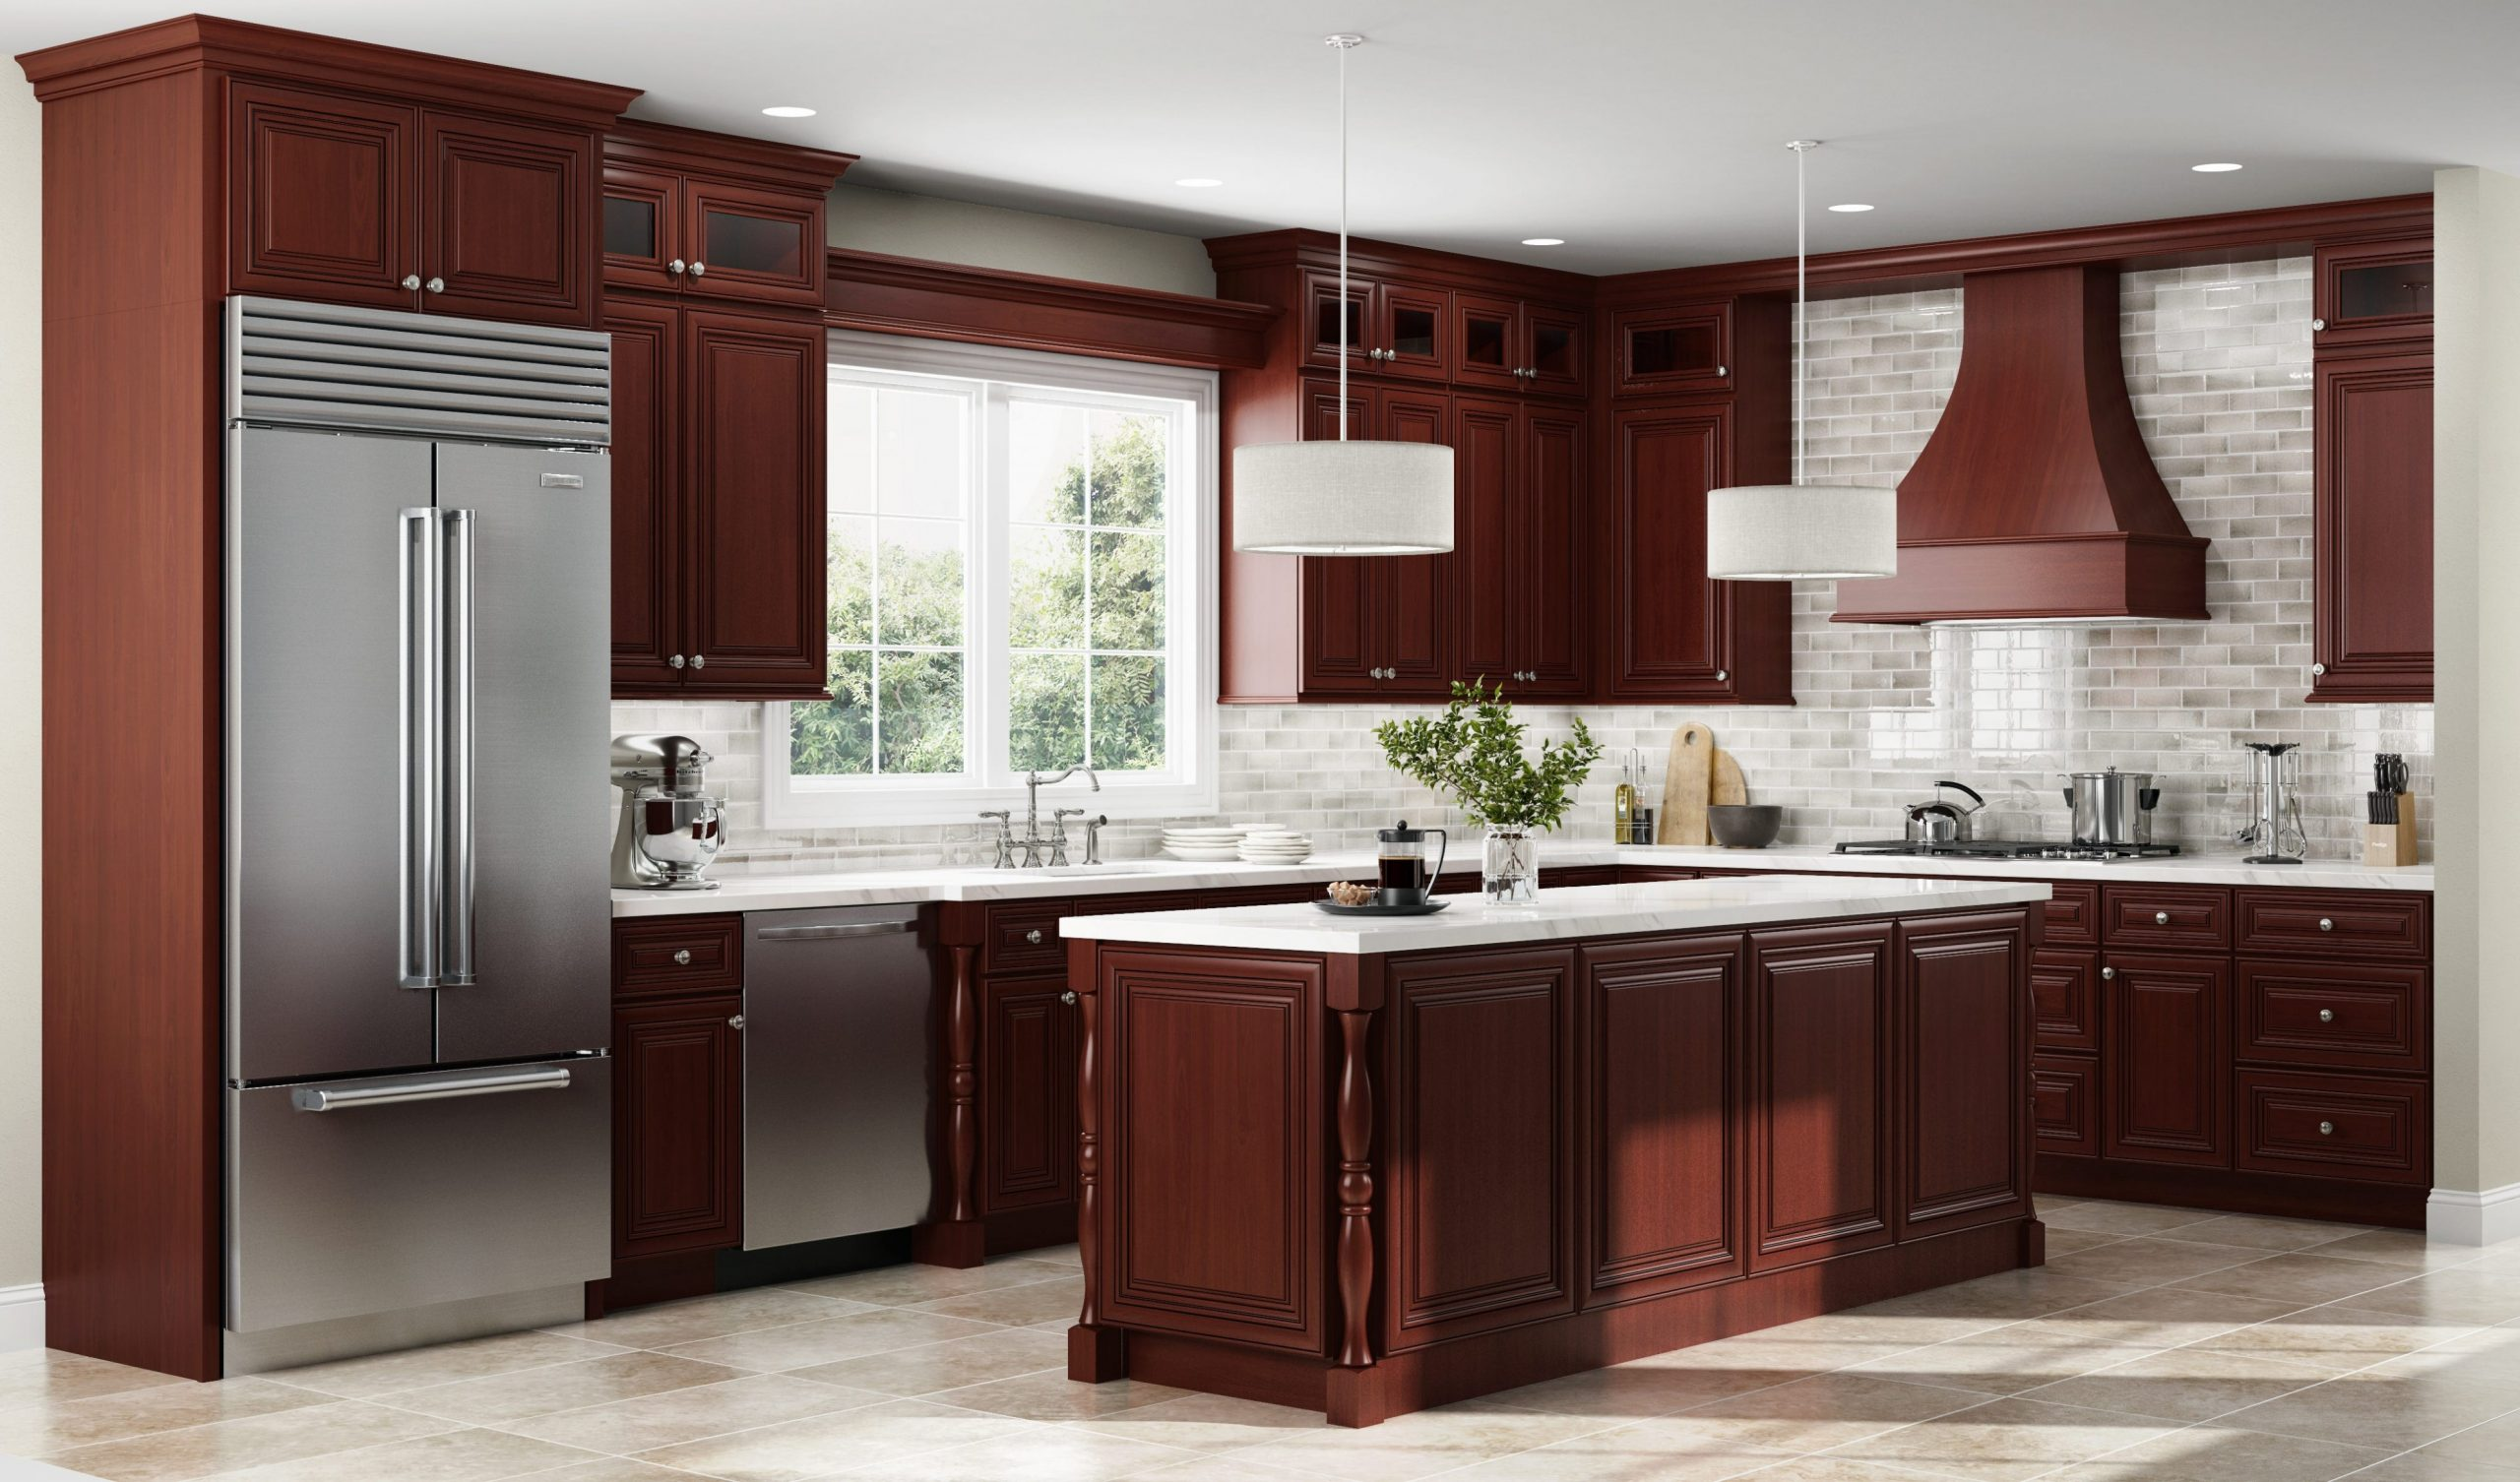 Gorgeous Kitchen Design ideas For Cherry Cabinets - Kitchen Wall Paint Colors With Cherry Cabinets